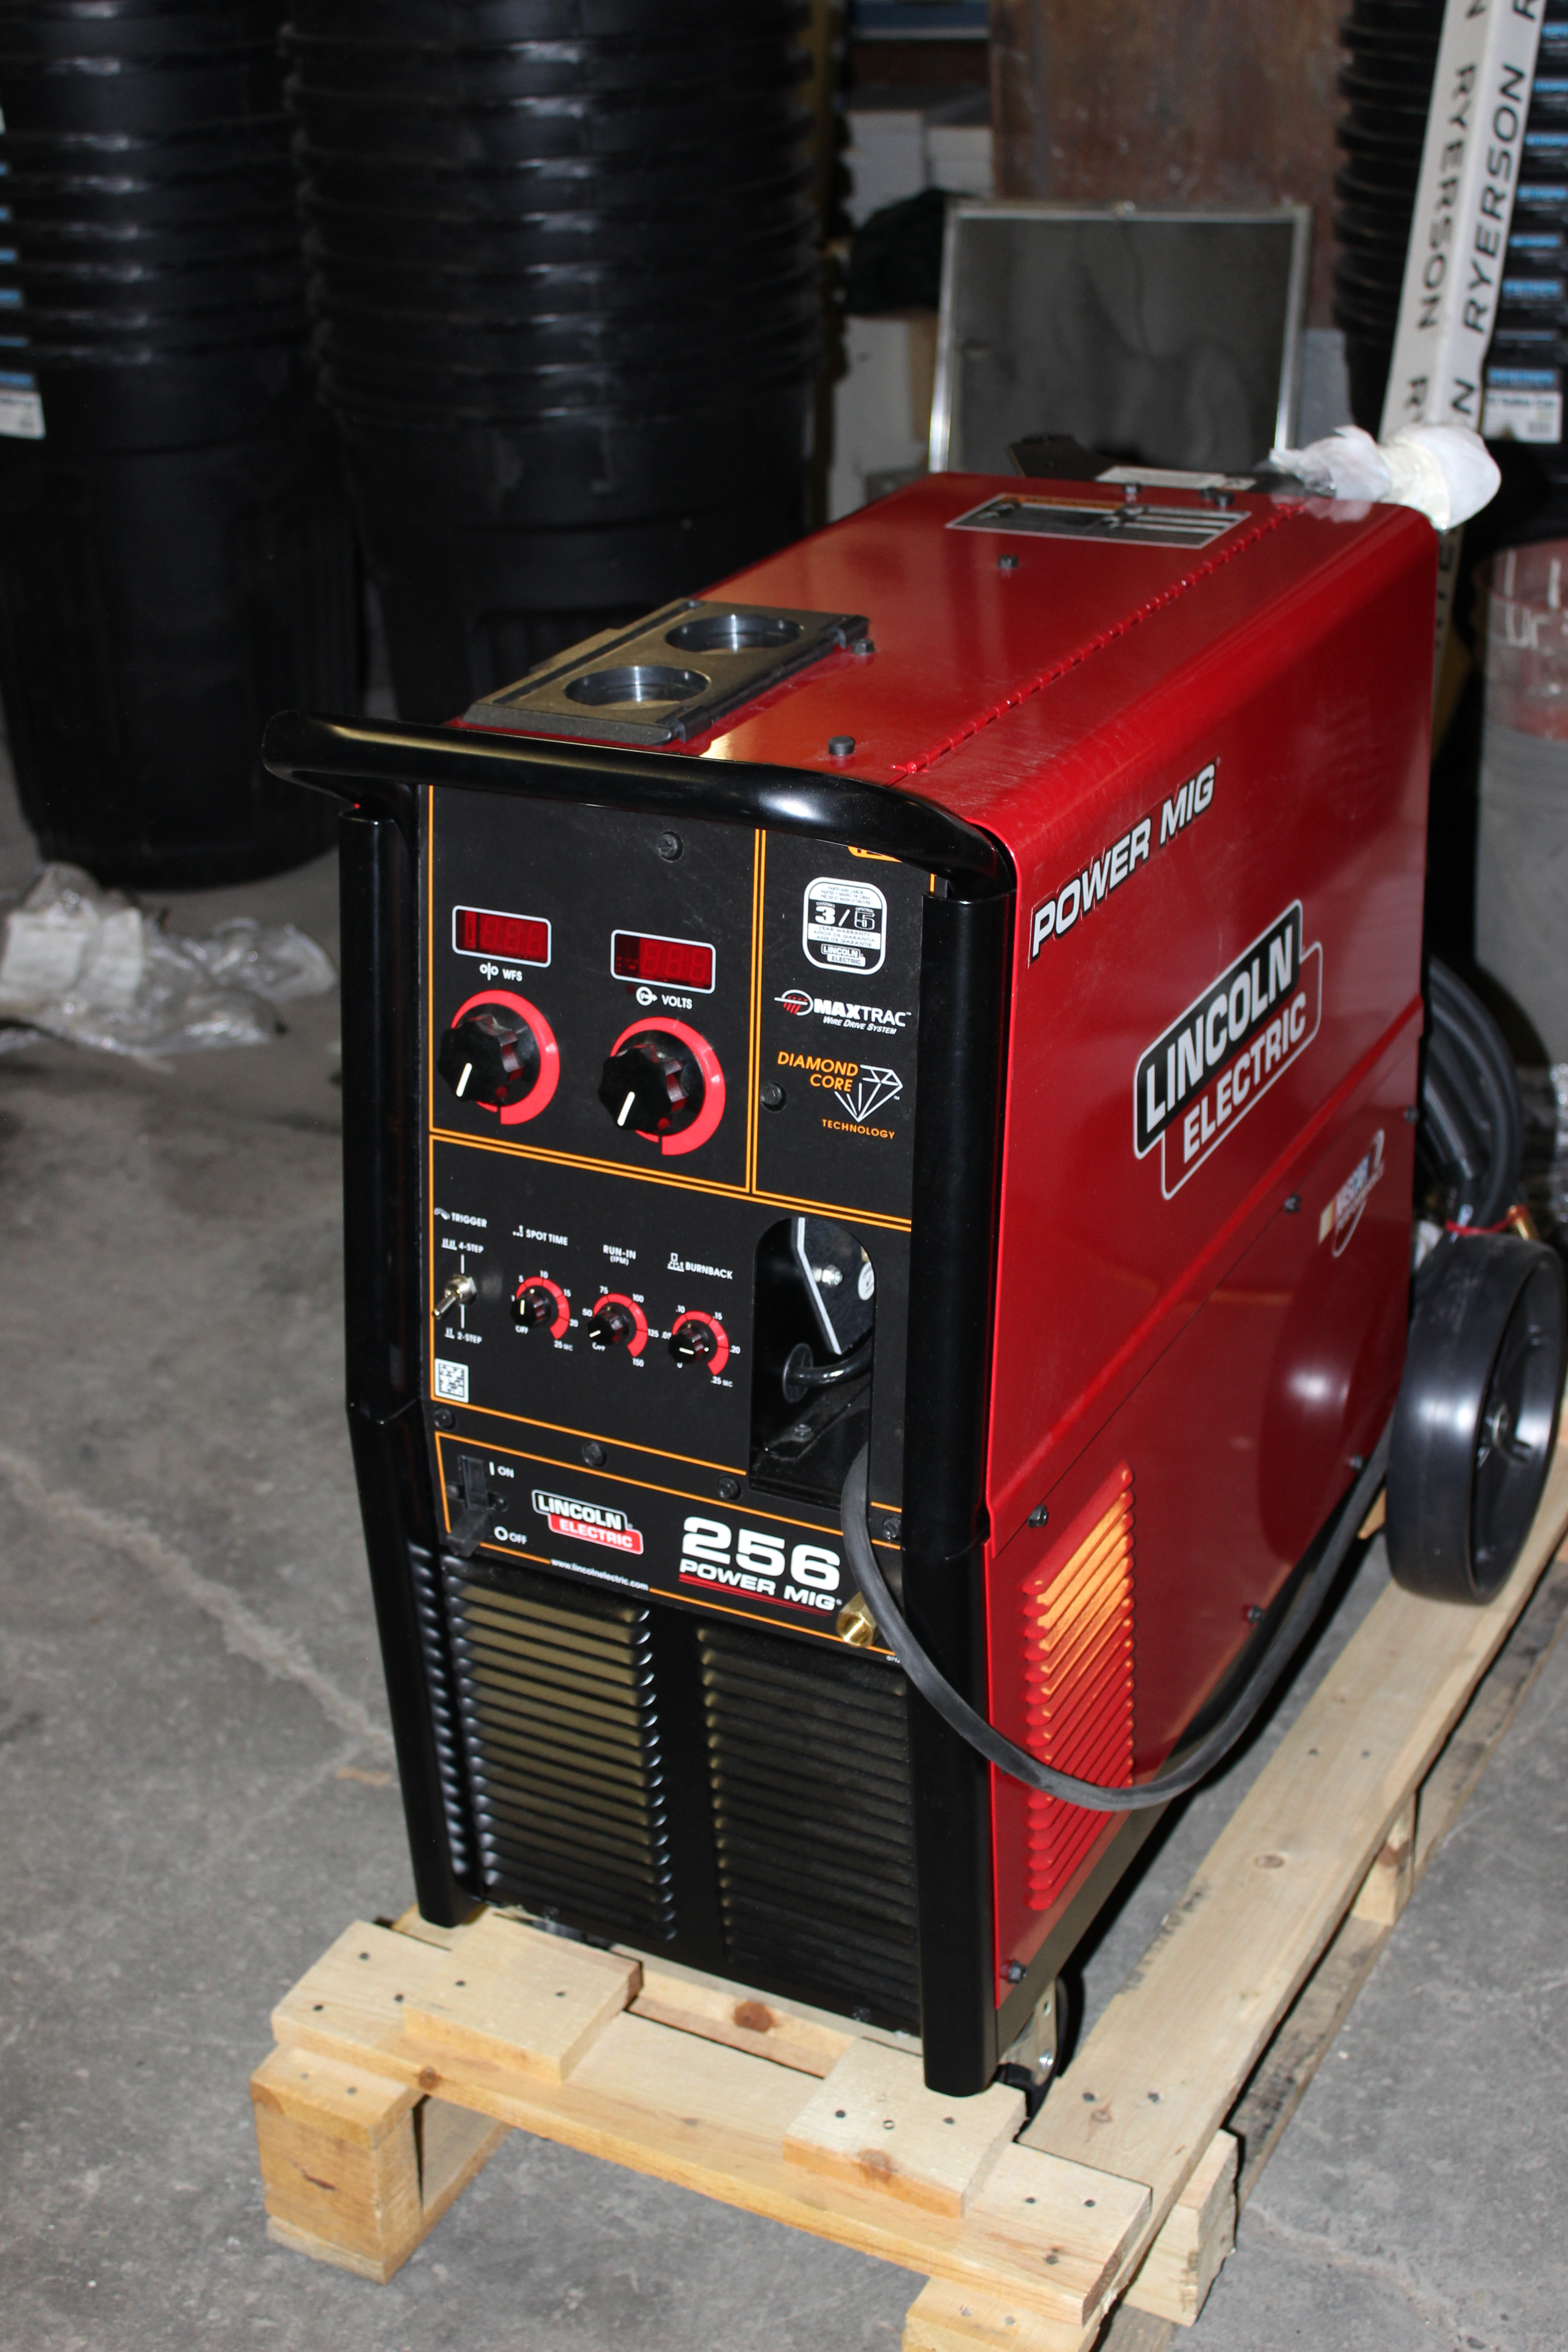 orbital news for welding introduces electric apex releases mig htm assurance welder lincoln newsroom quality